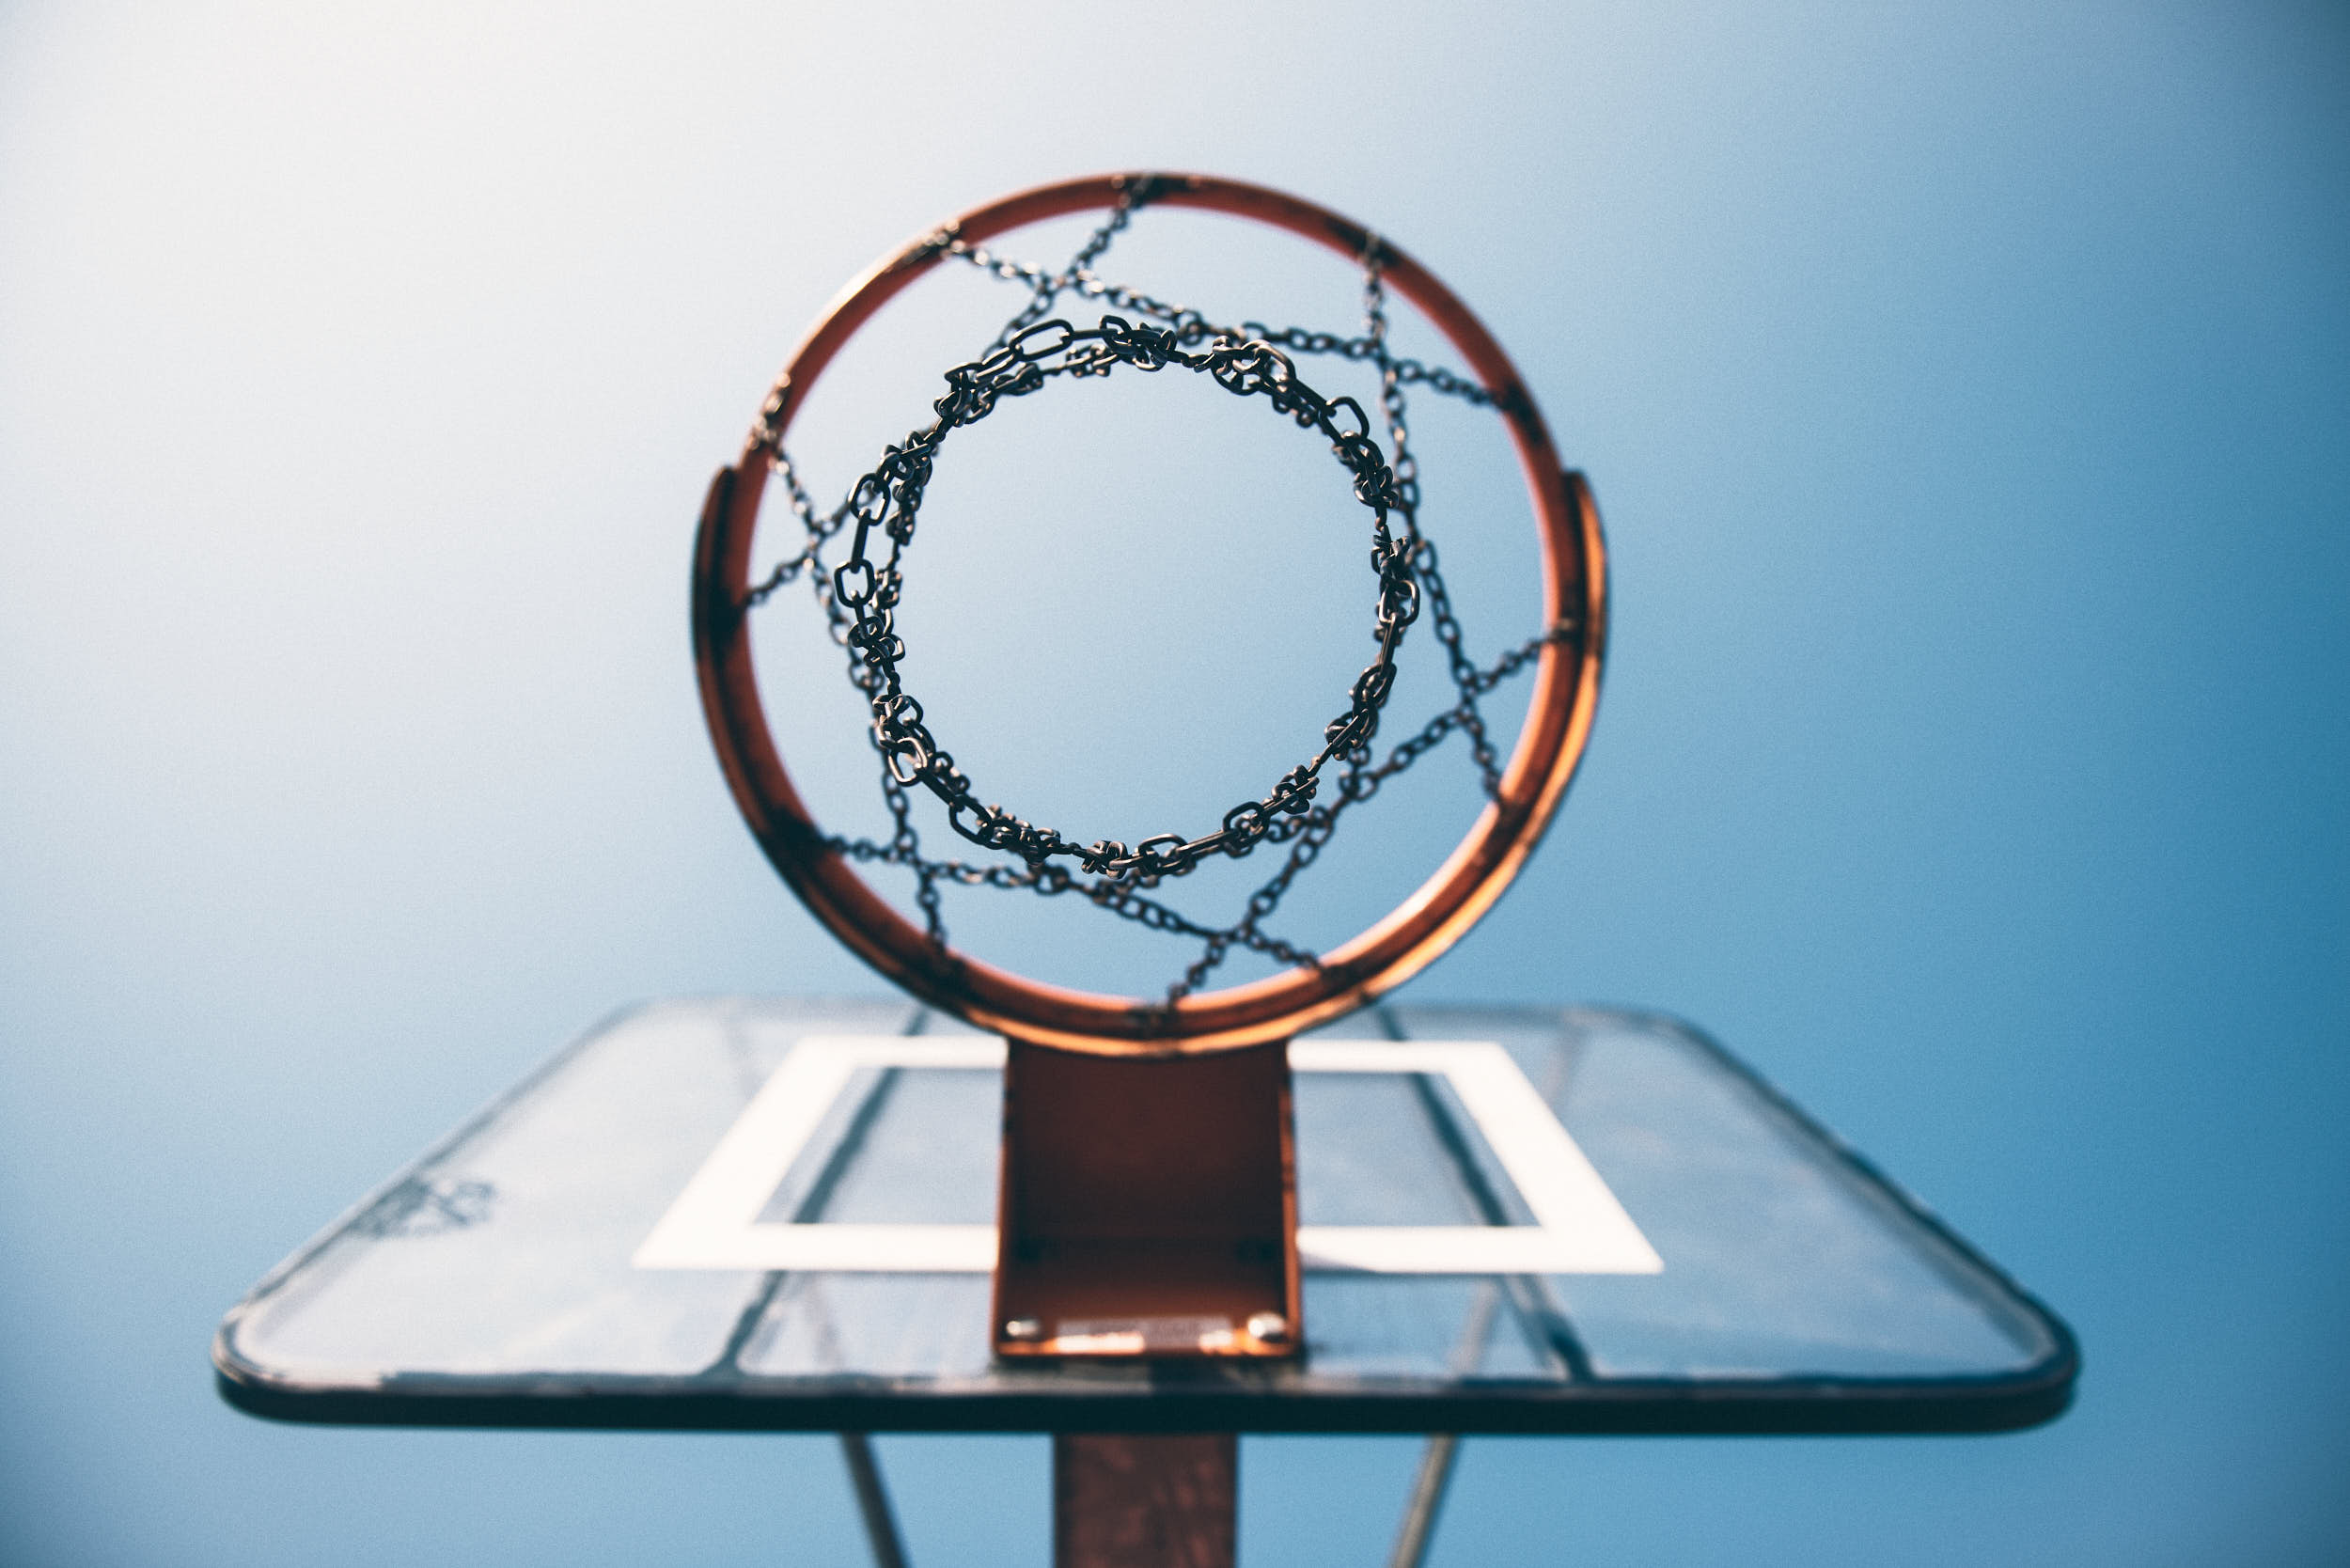 Basketball hoop with a chain net photographed from beneath with blue clear sky.